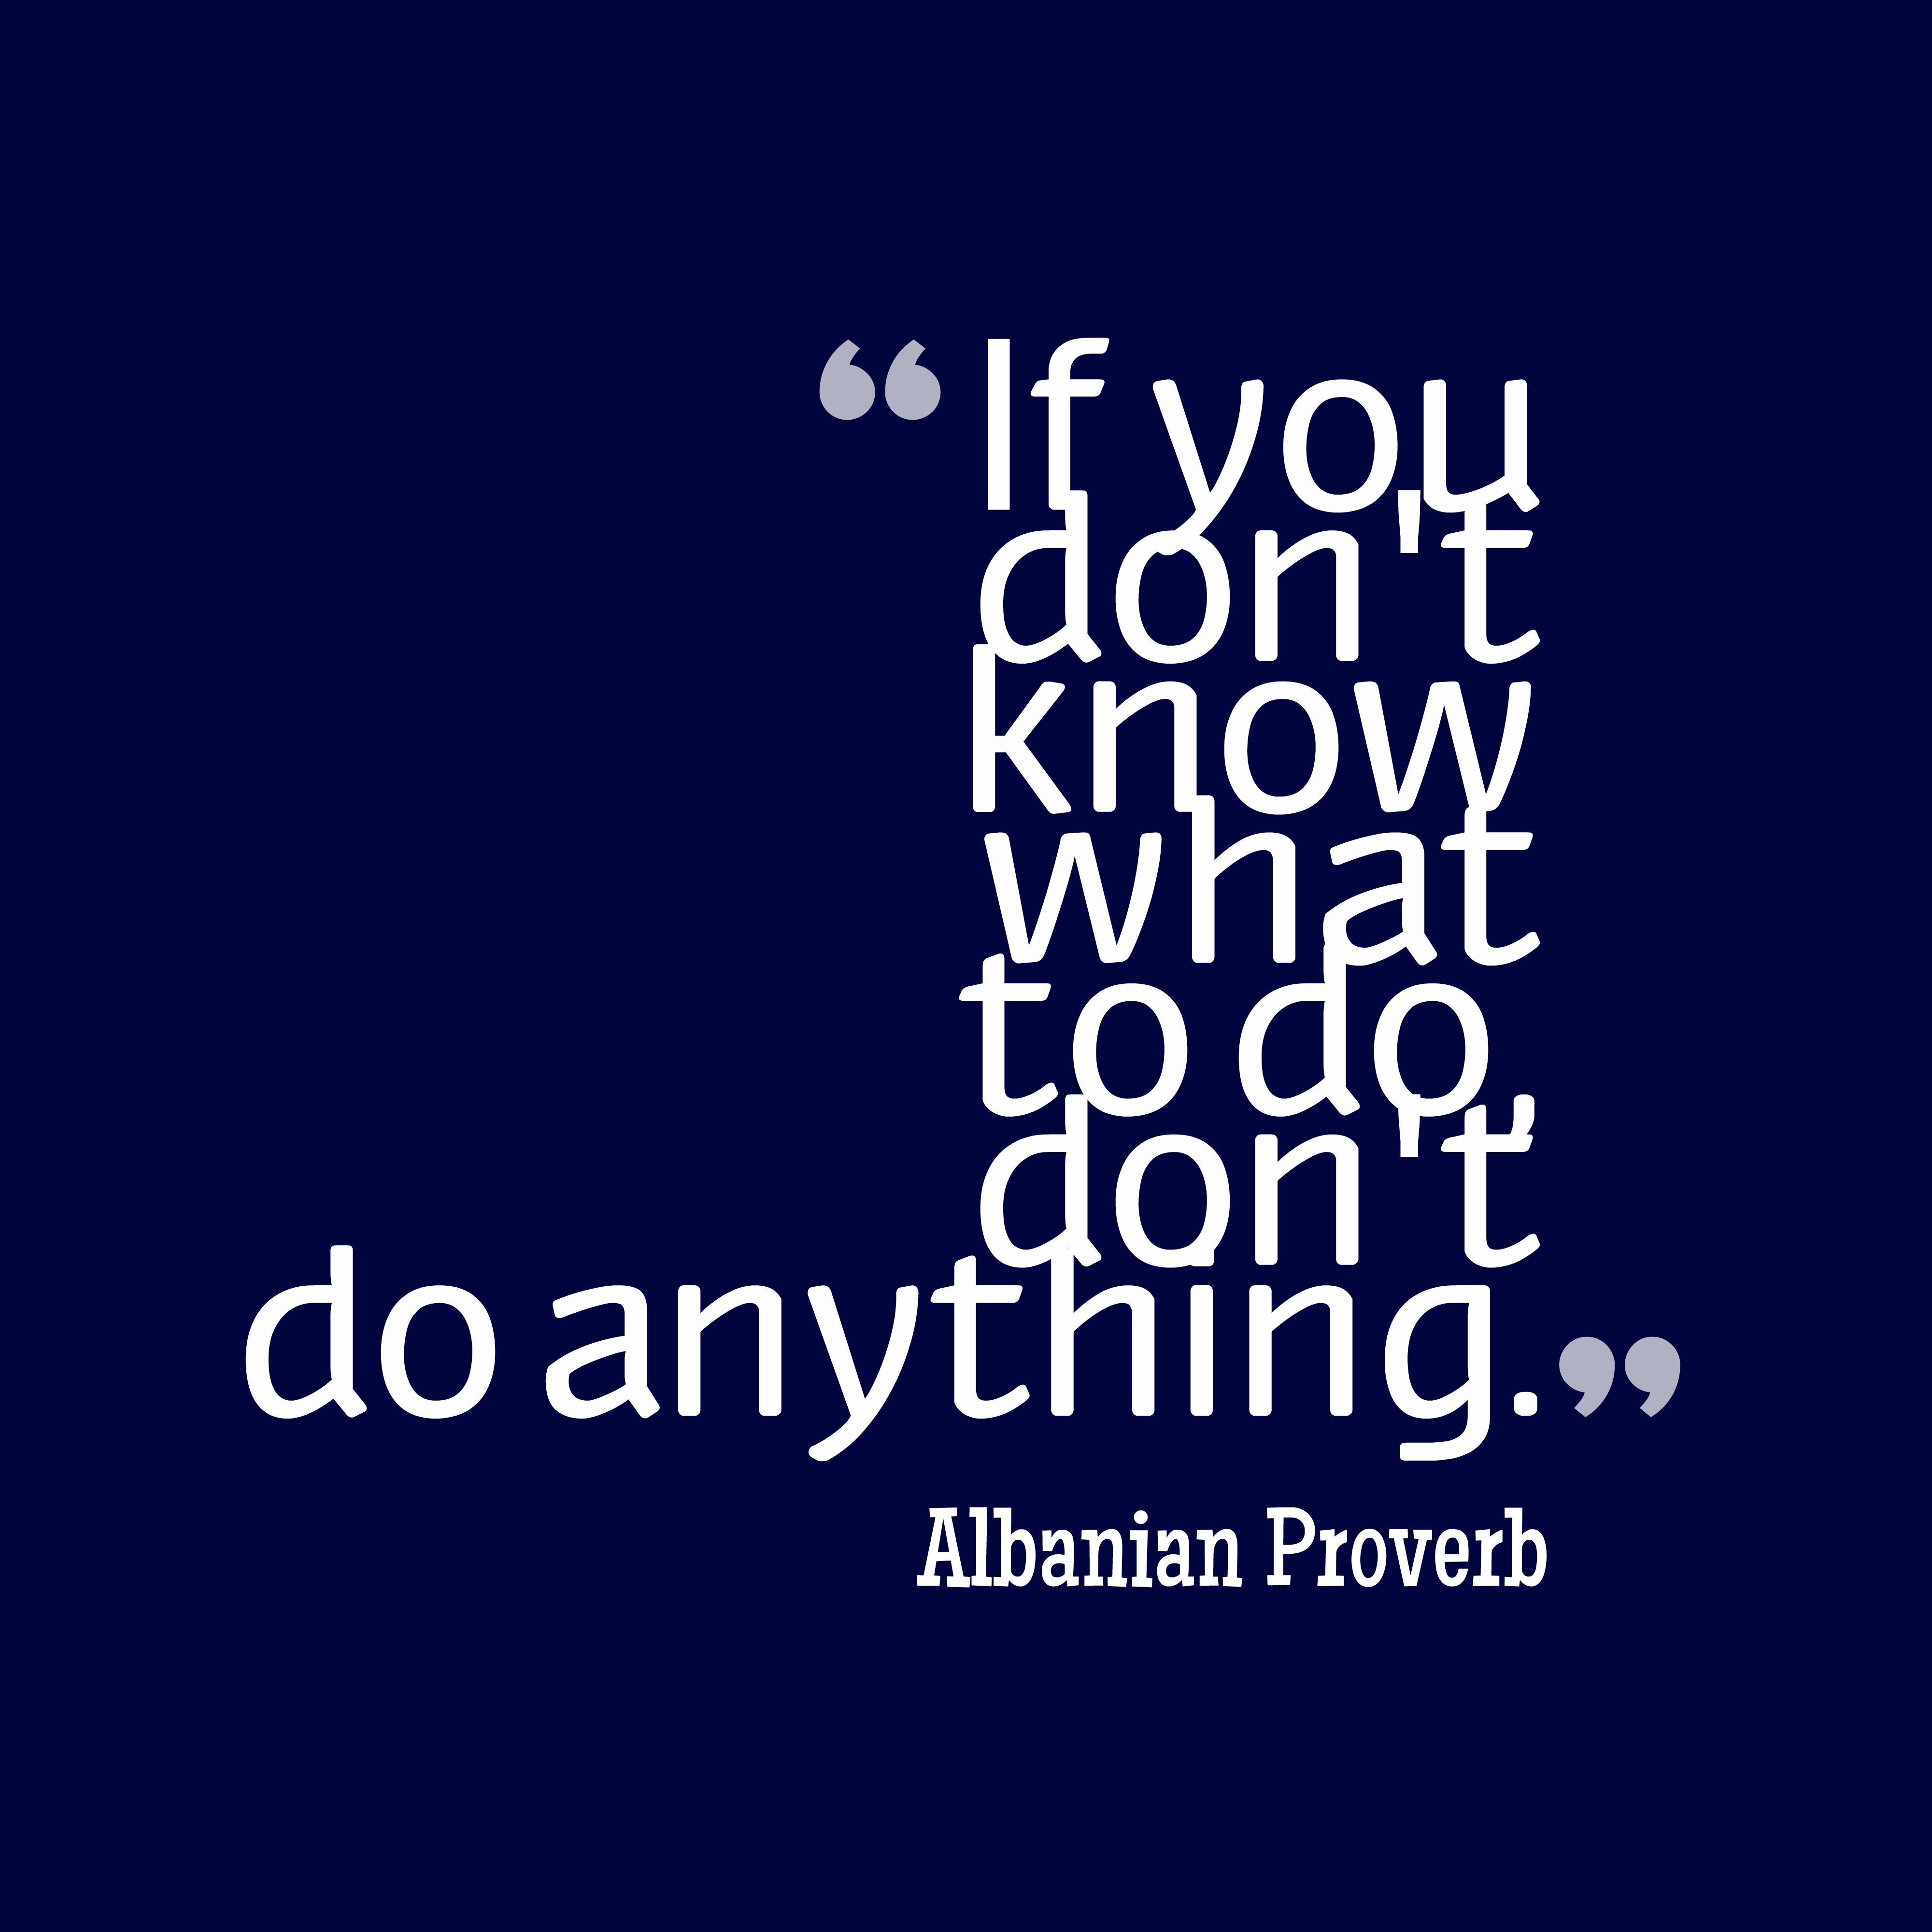 Albanian Proverb About Life